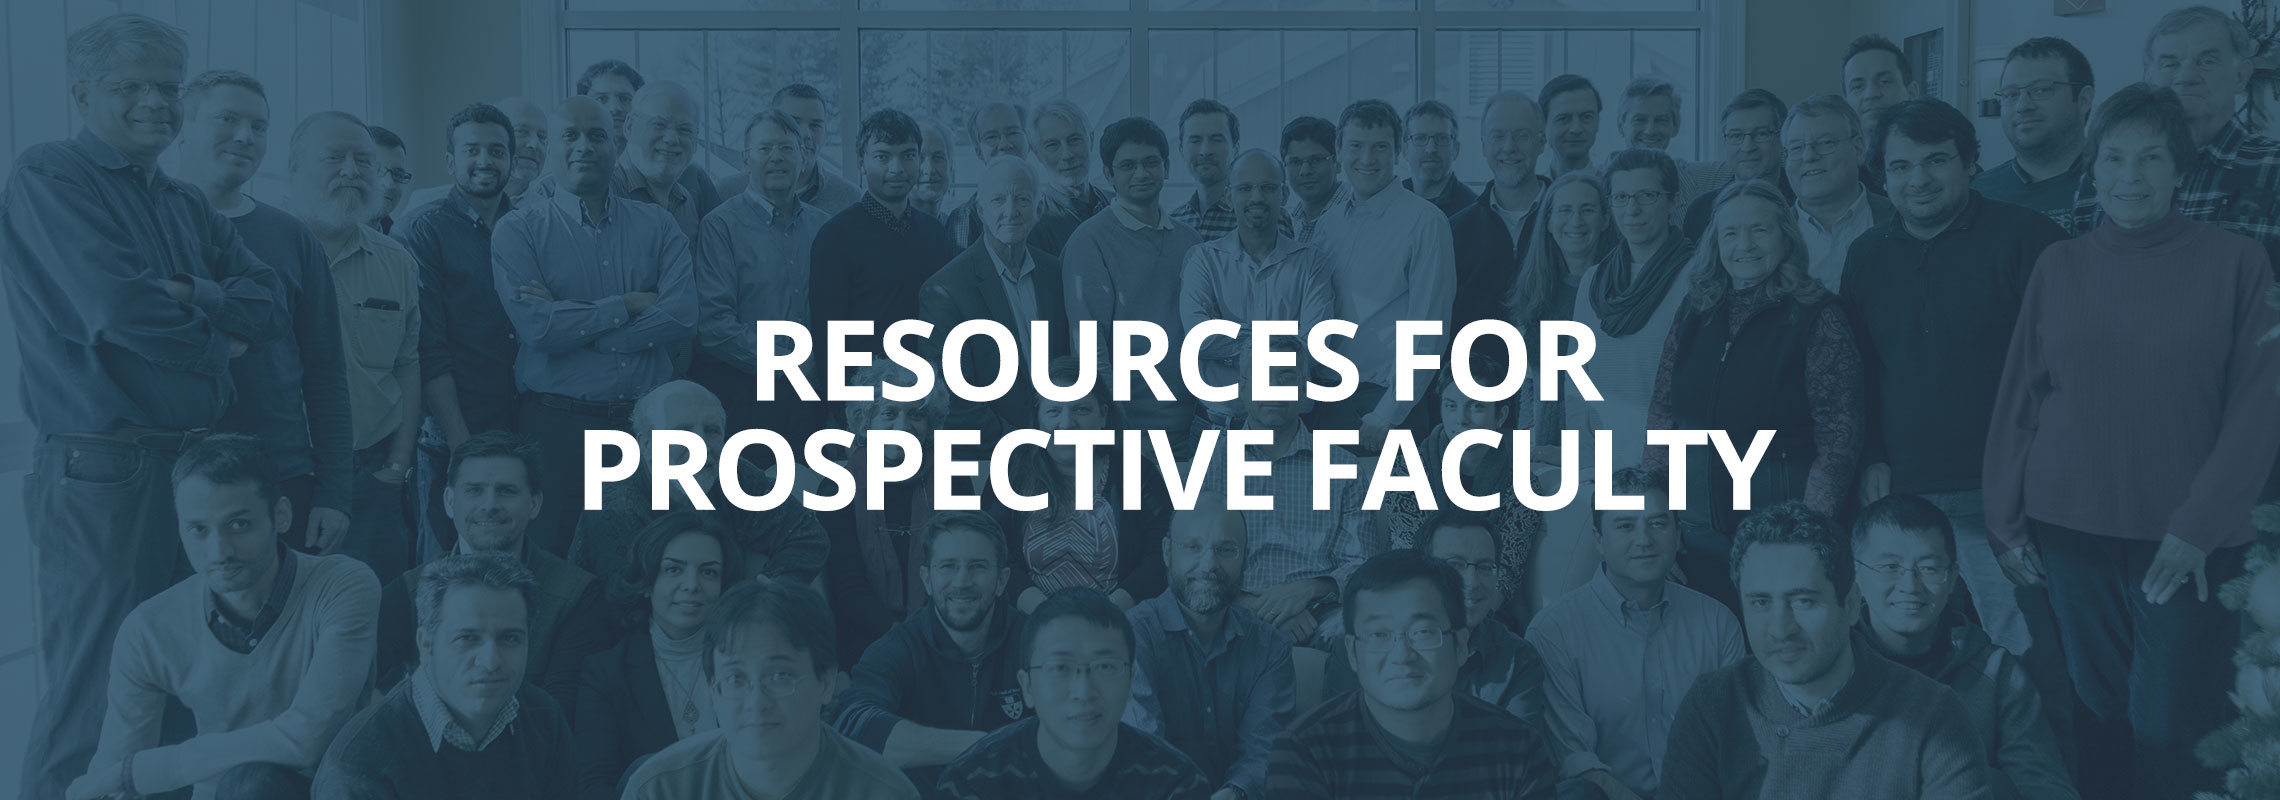 Resources for Prospective Faculty